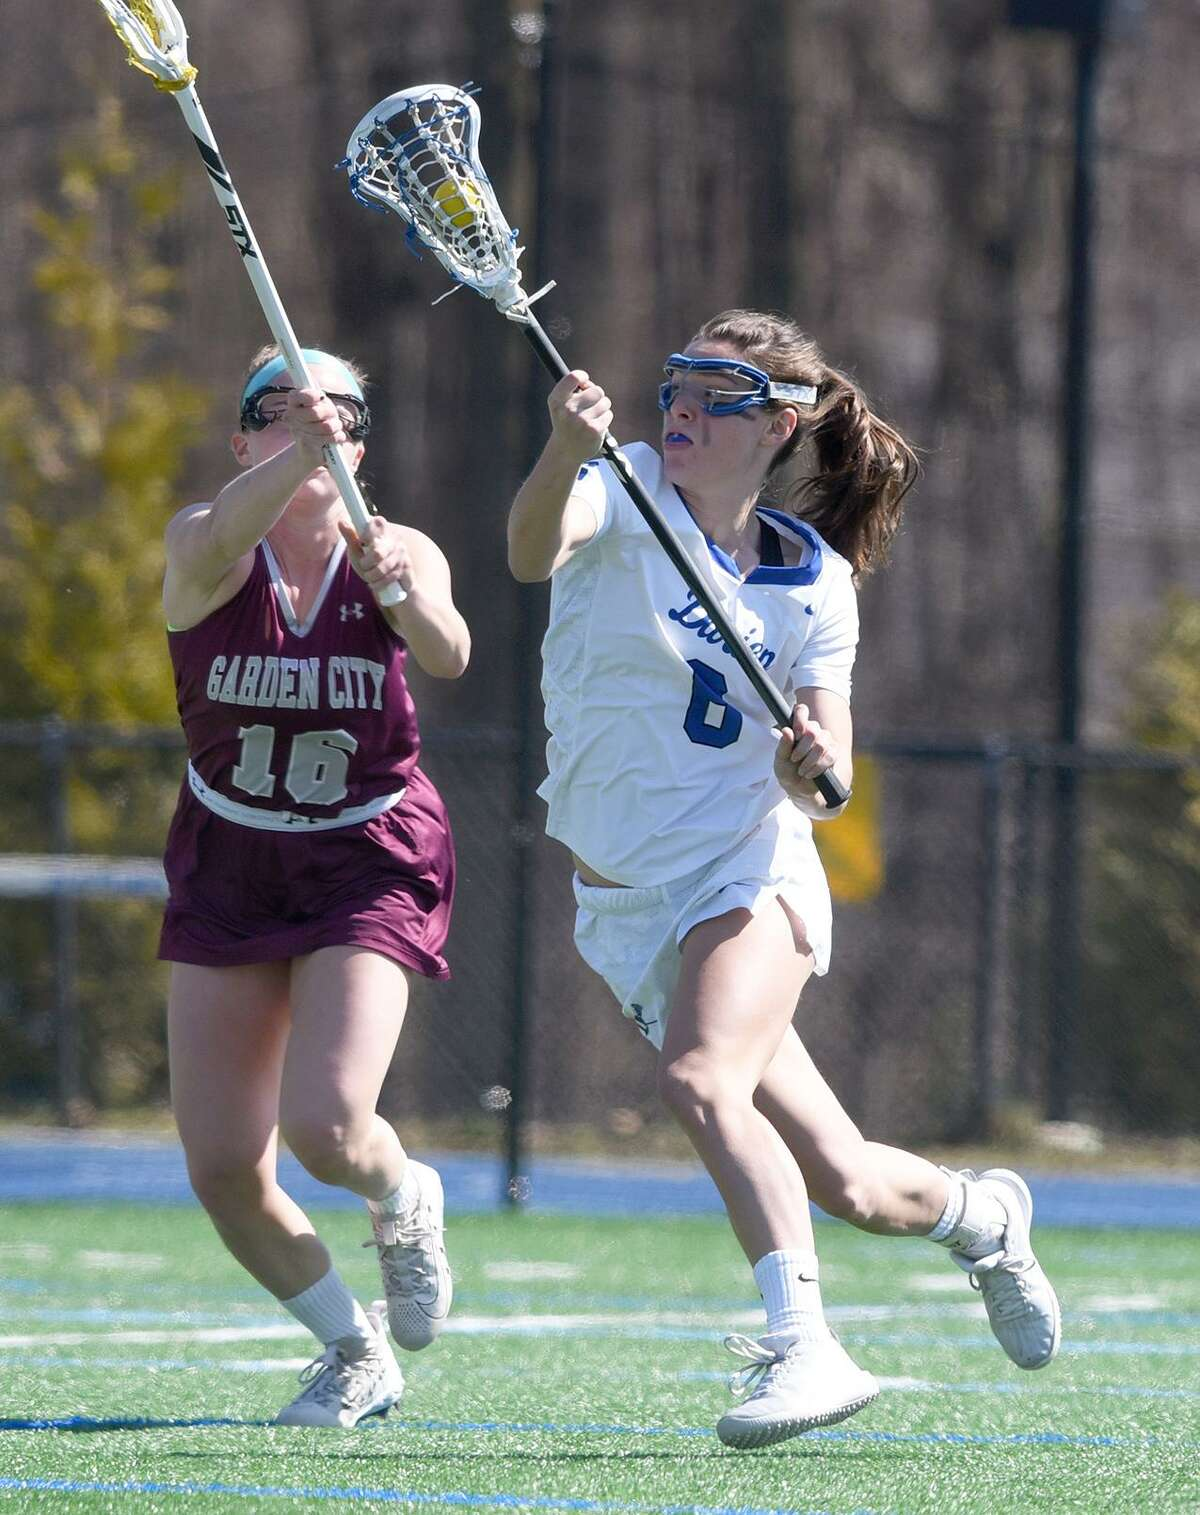 Darien's Katie Elders (6) drives to the net while Garden City's Caitlin Cook (16) defends during a girls lacrosse game at Darien High School on Saturday, April 6, 2019.